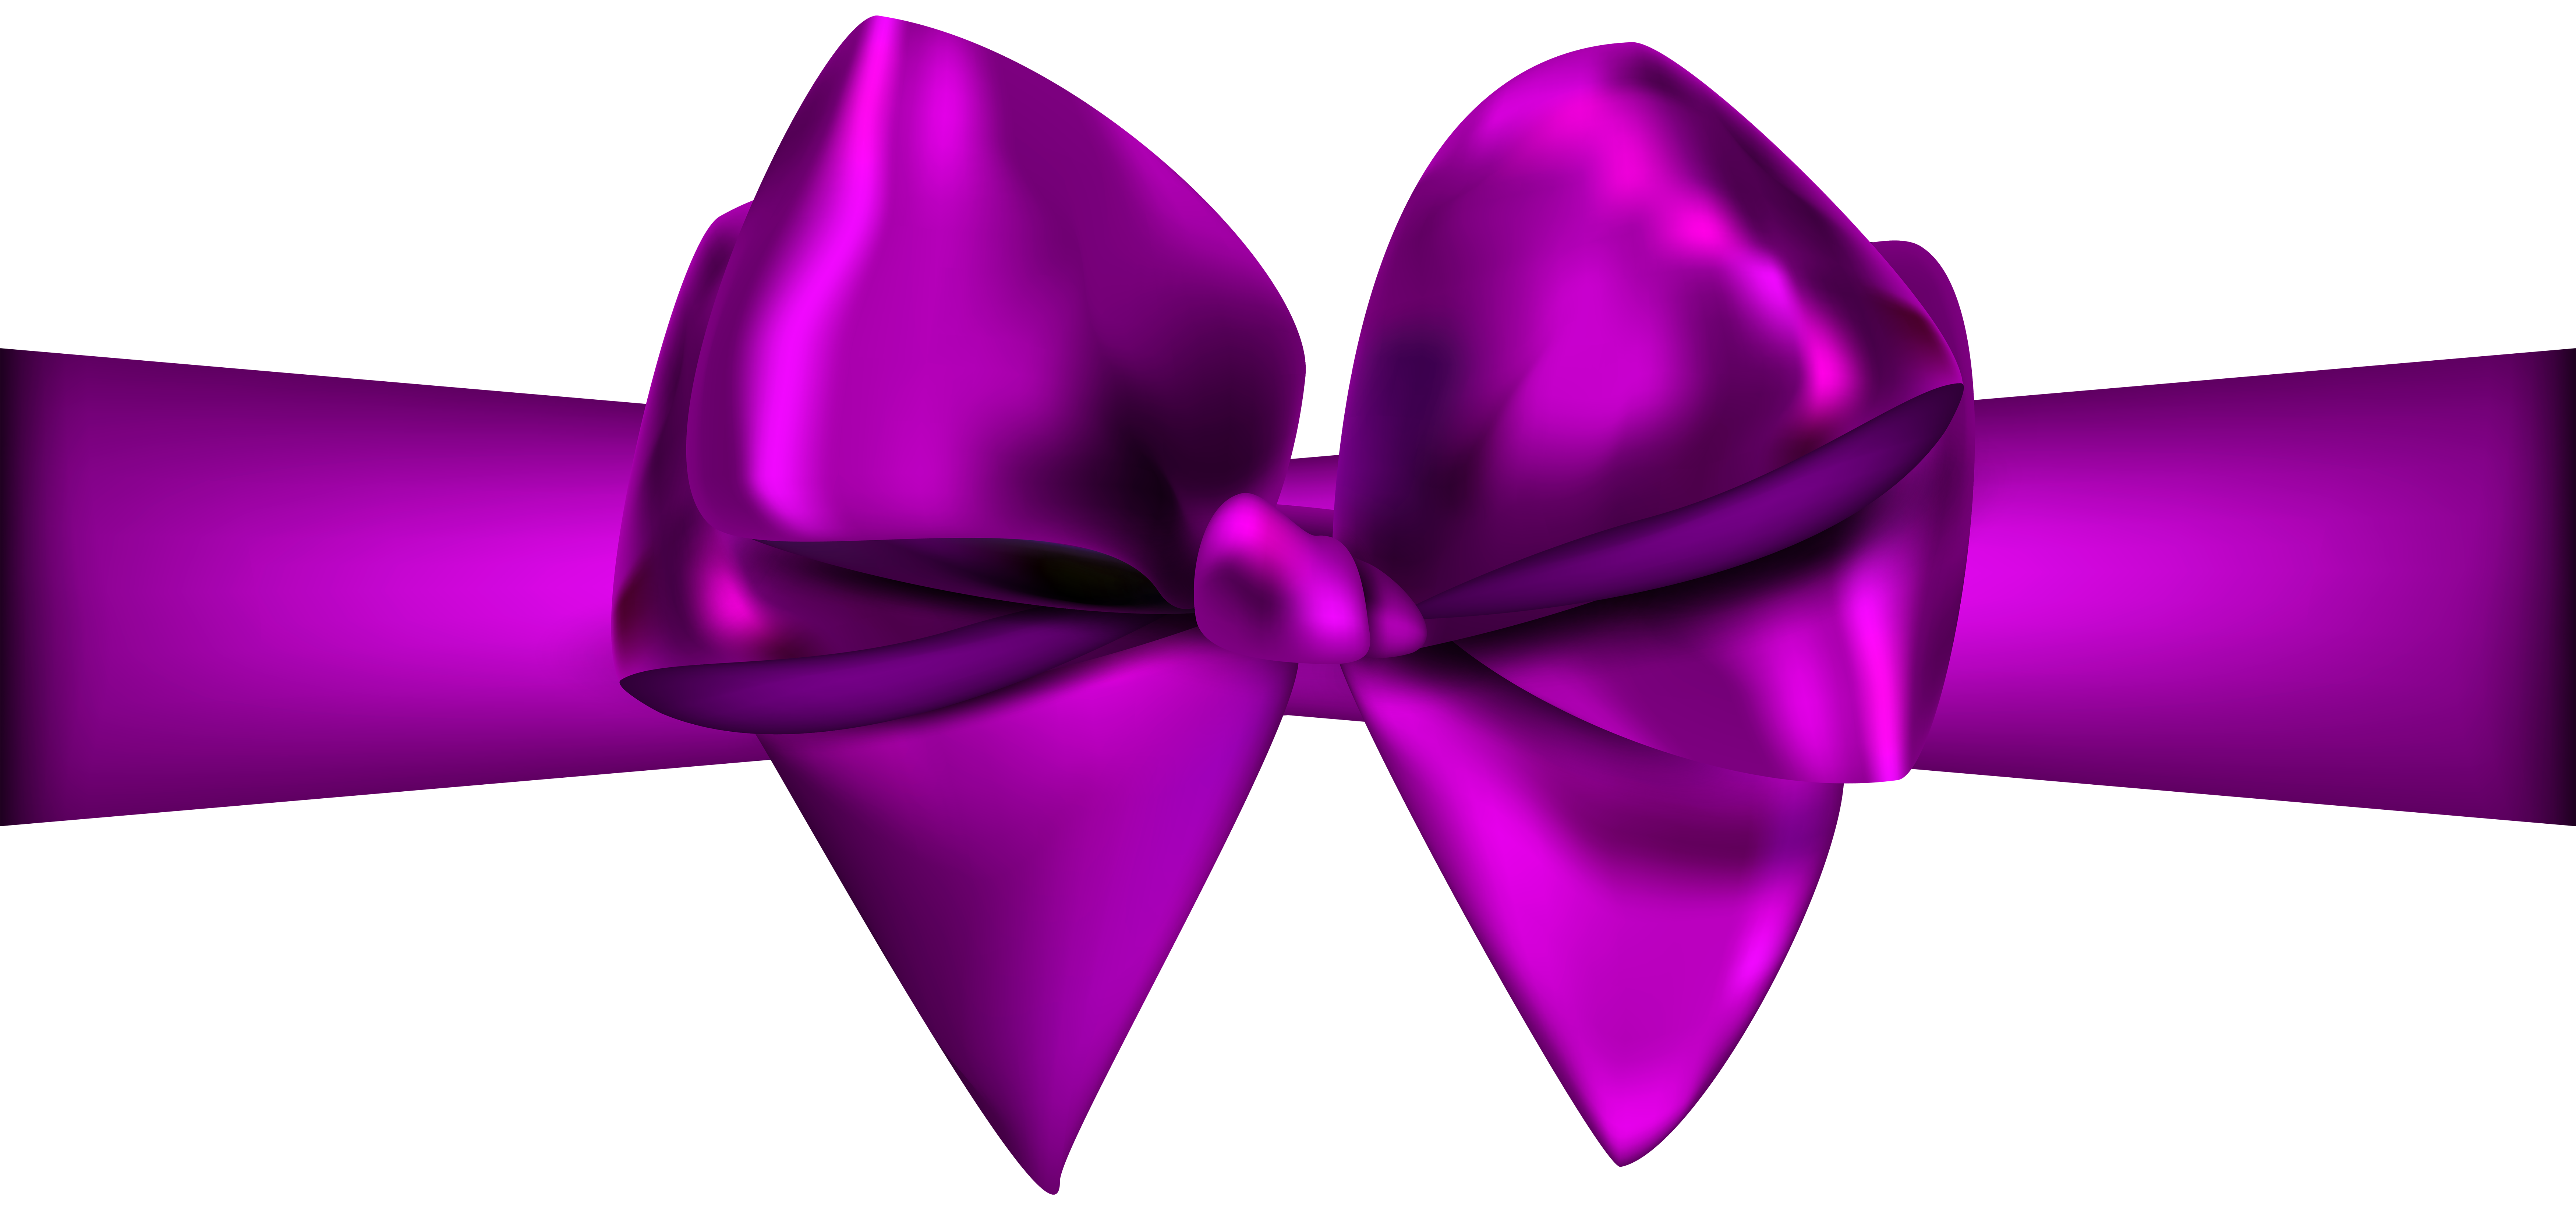 Bows clipart violet ribbon. Purple with bow png